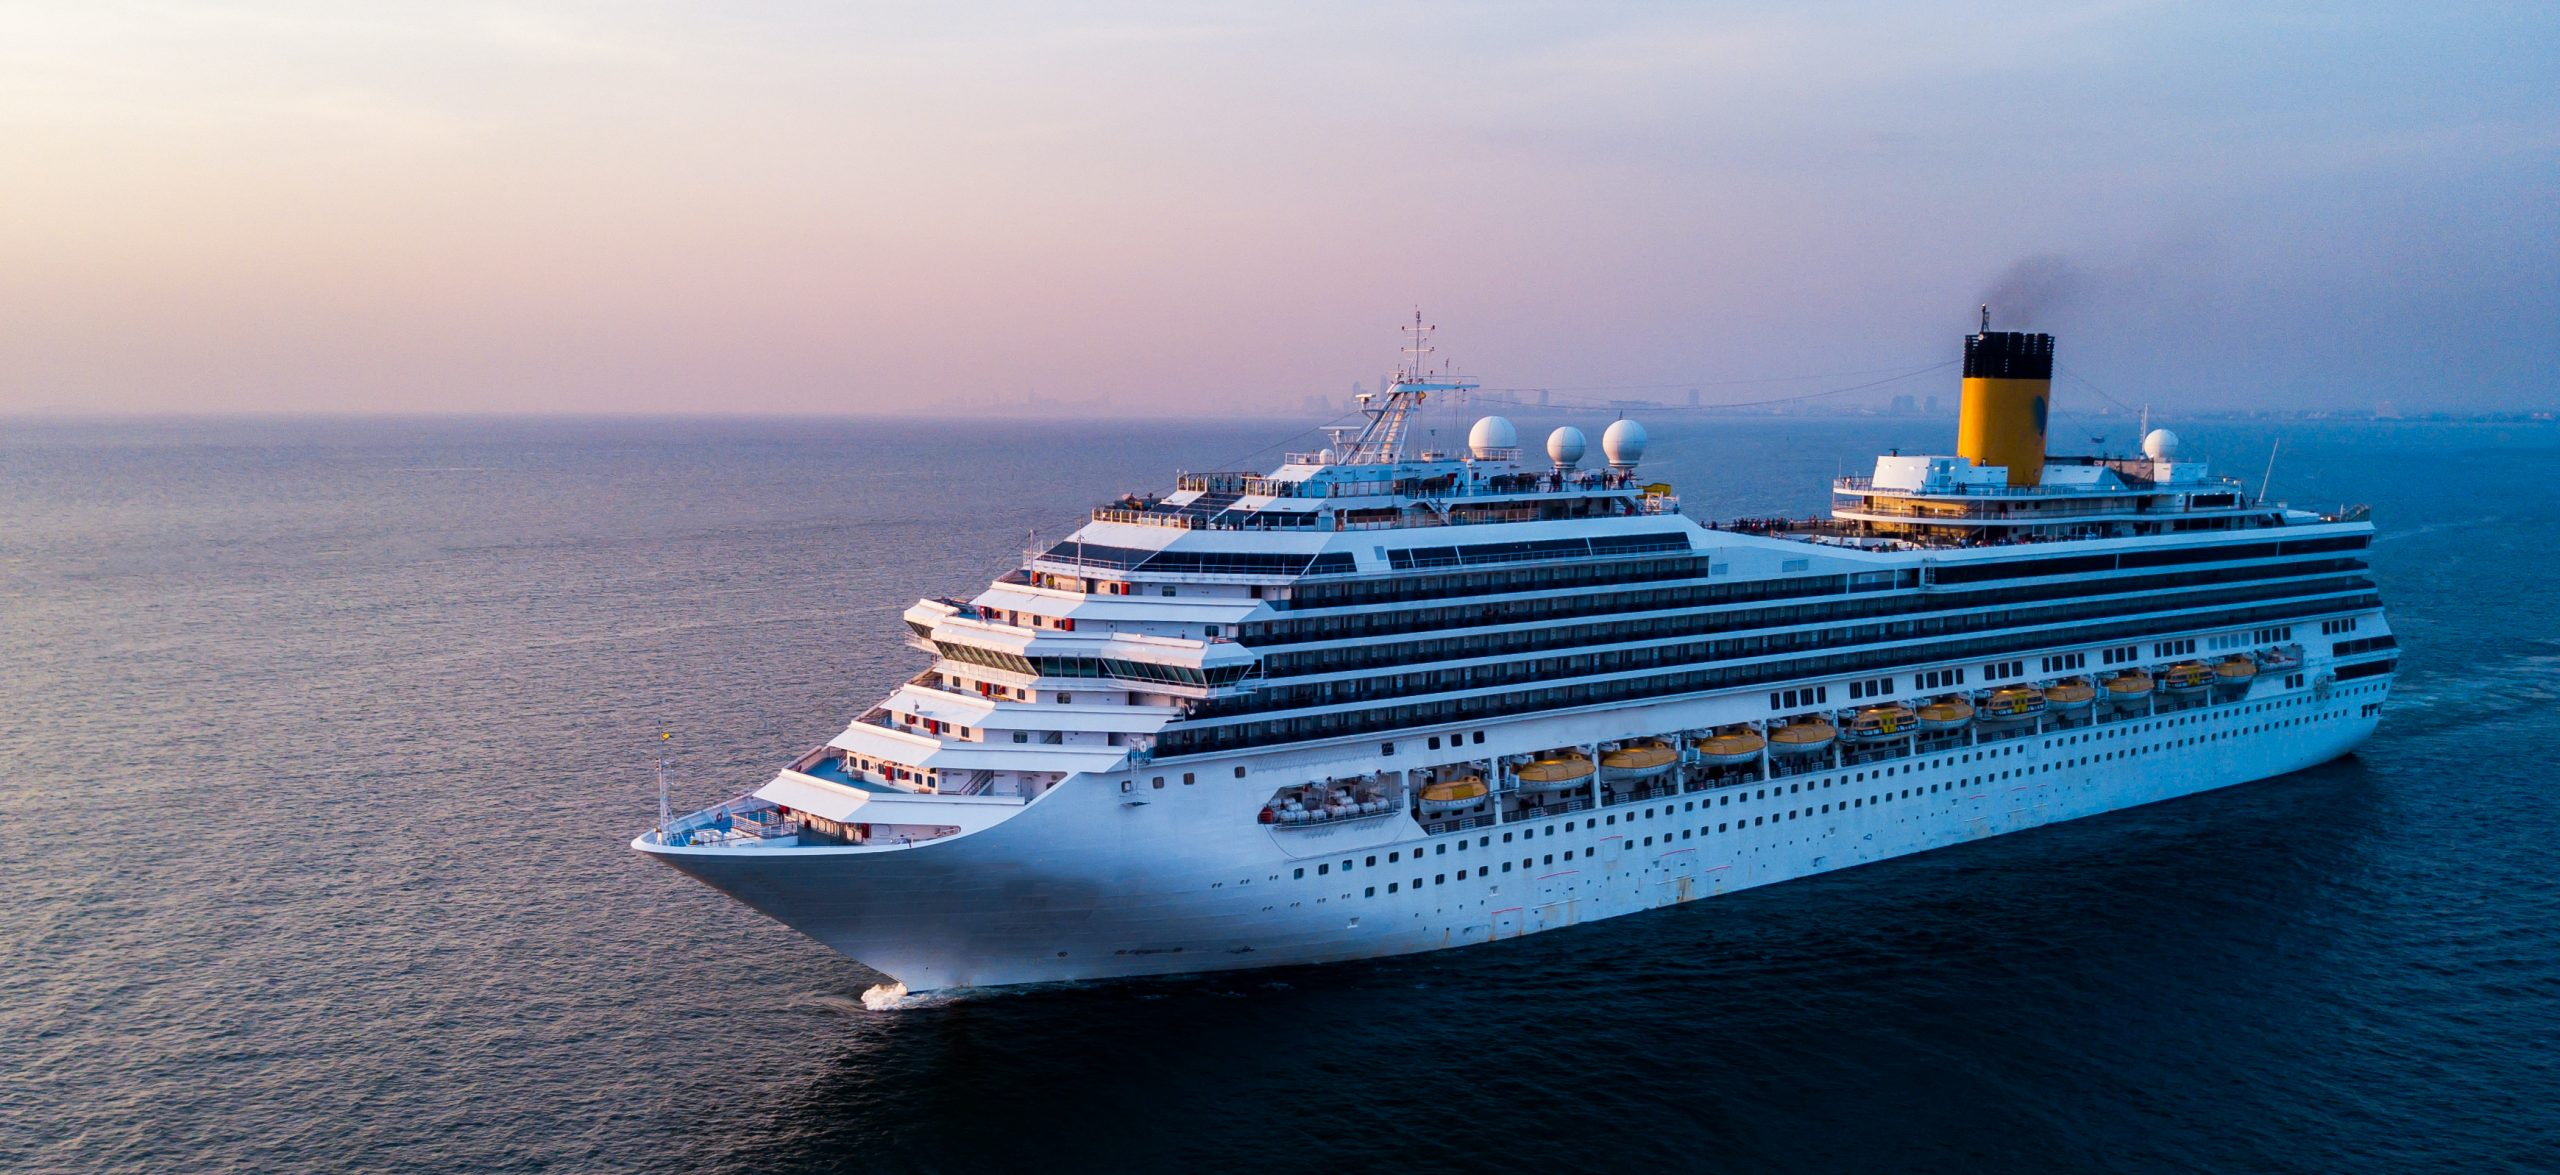 large cruise ship sailing in calm ocean water at sunset